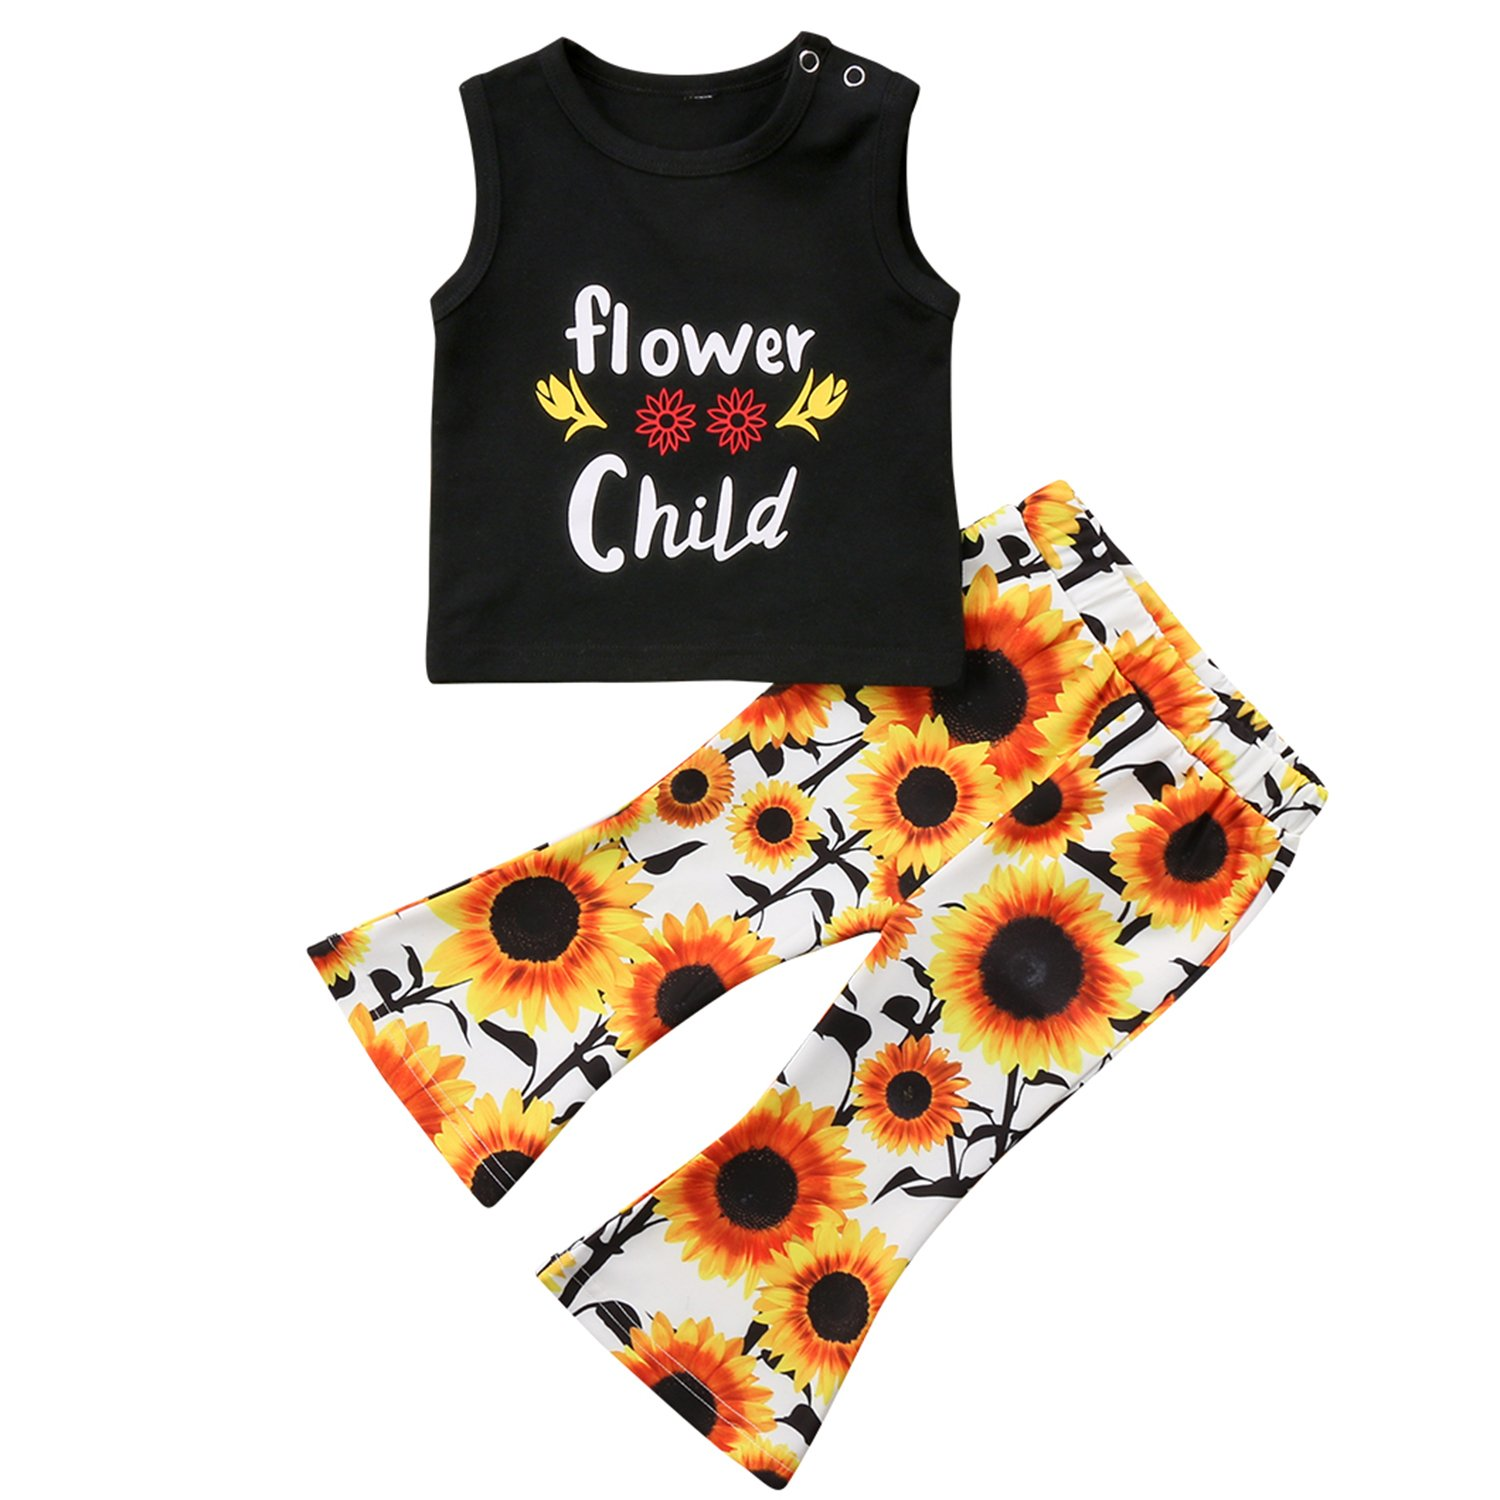 gllive Toddler Baby Girl Clothes Flower Child T-Shirt Tops + Sunflower Leggings Pants Outfit Set